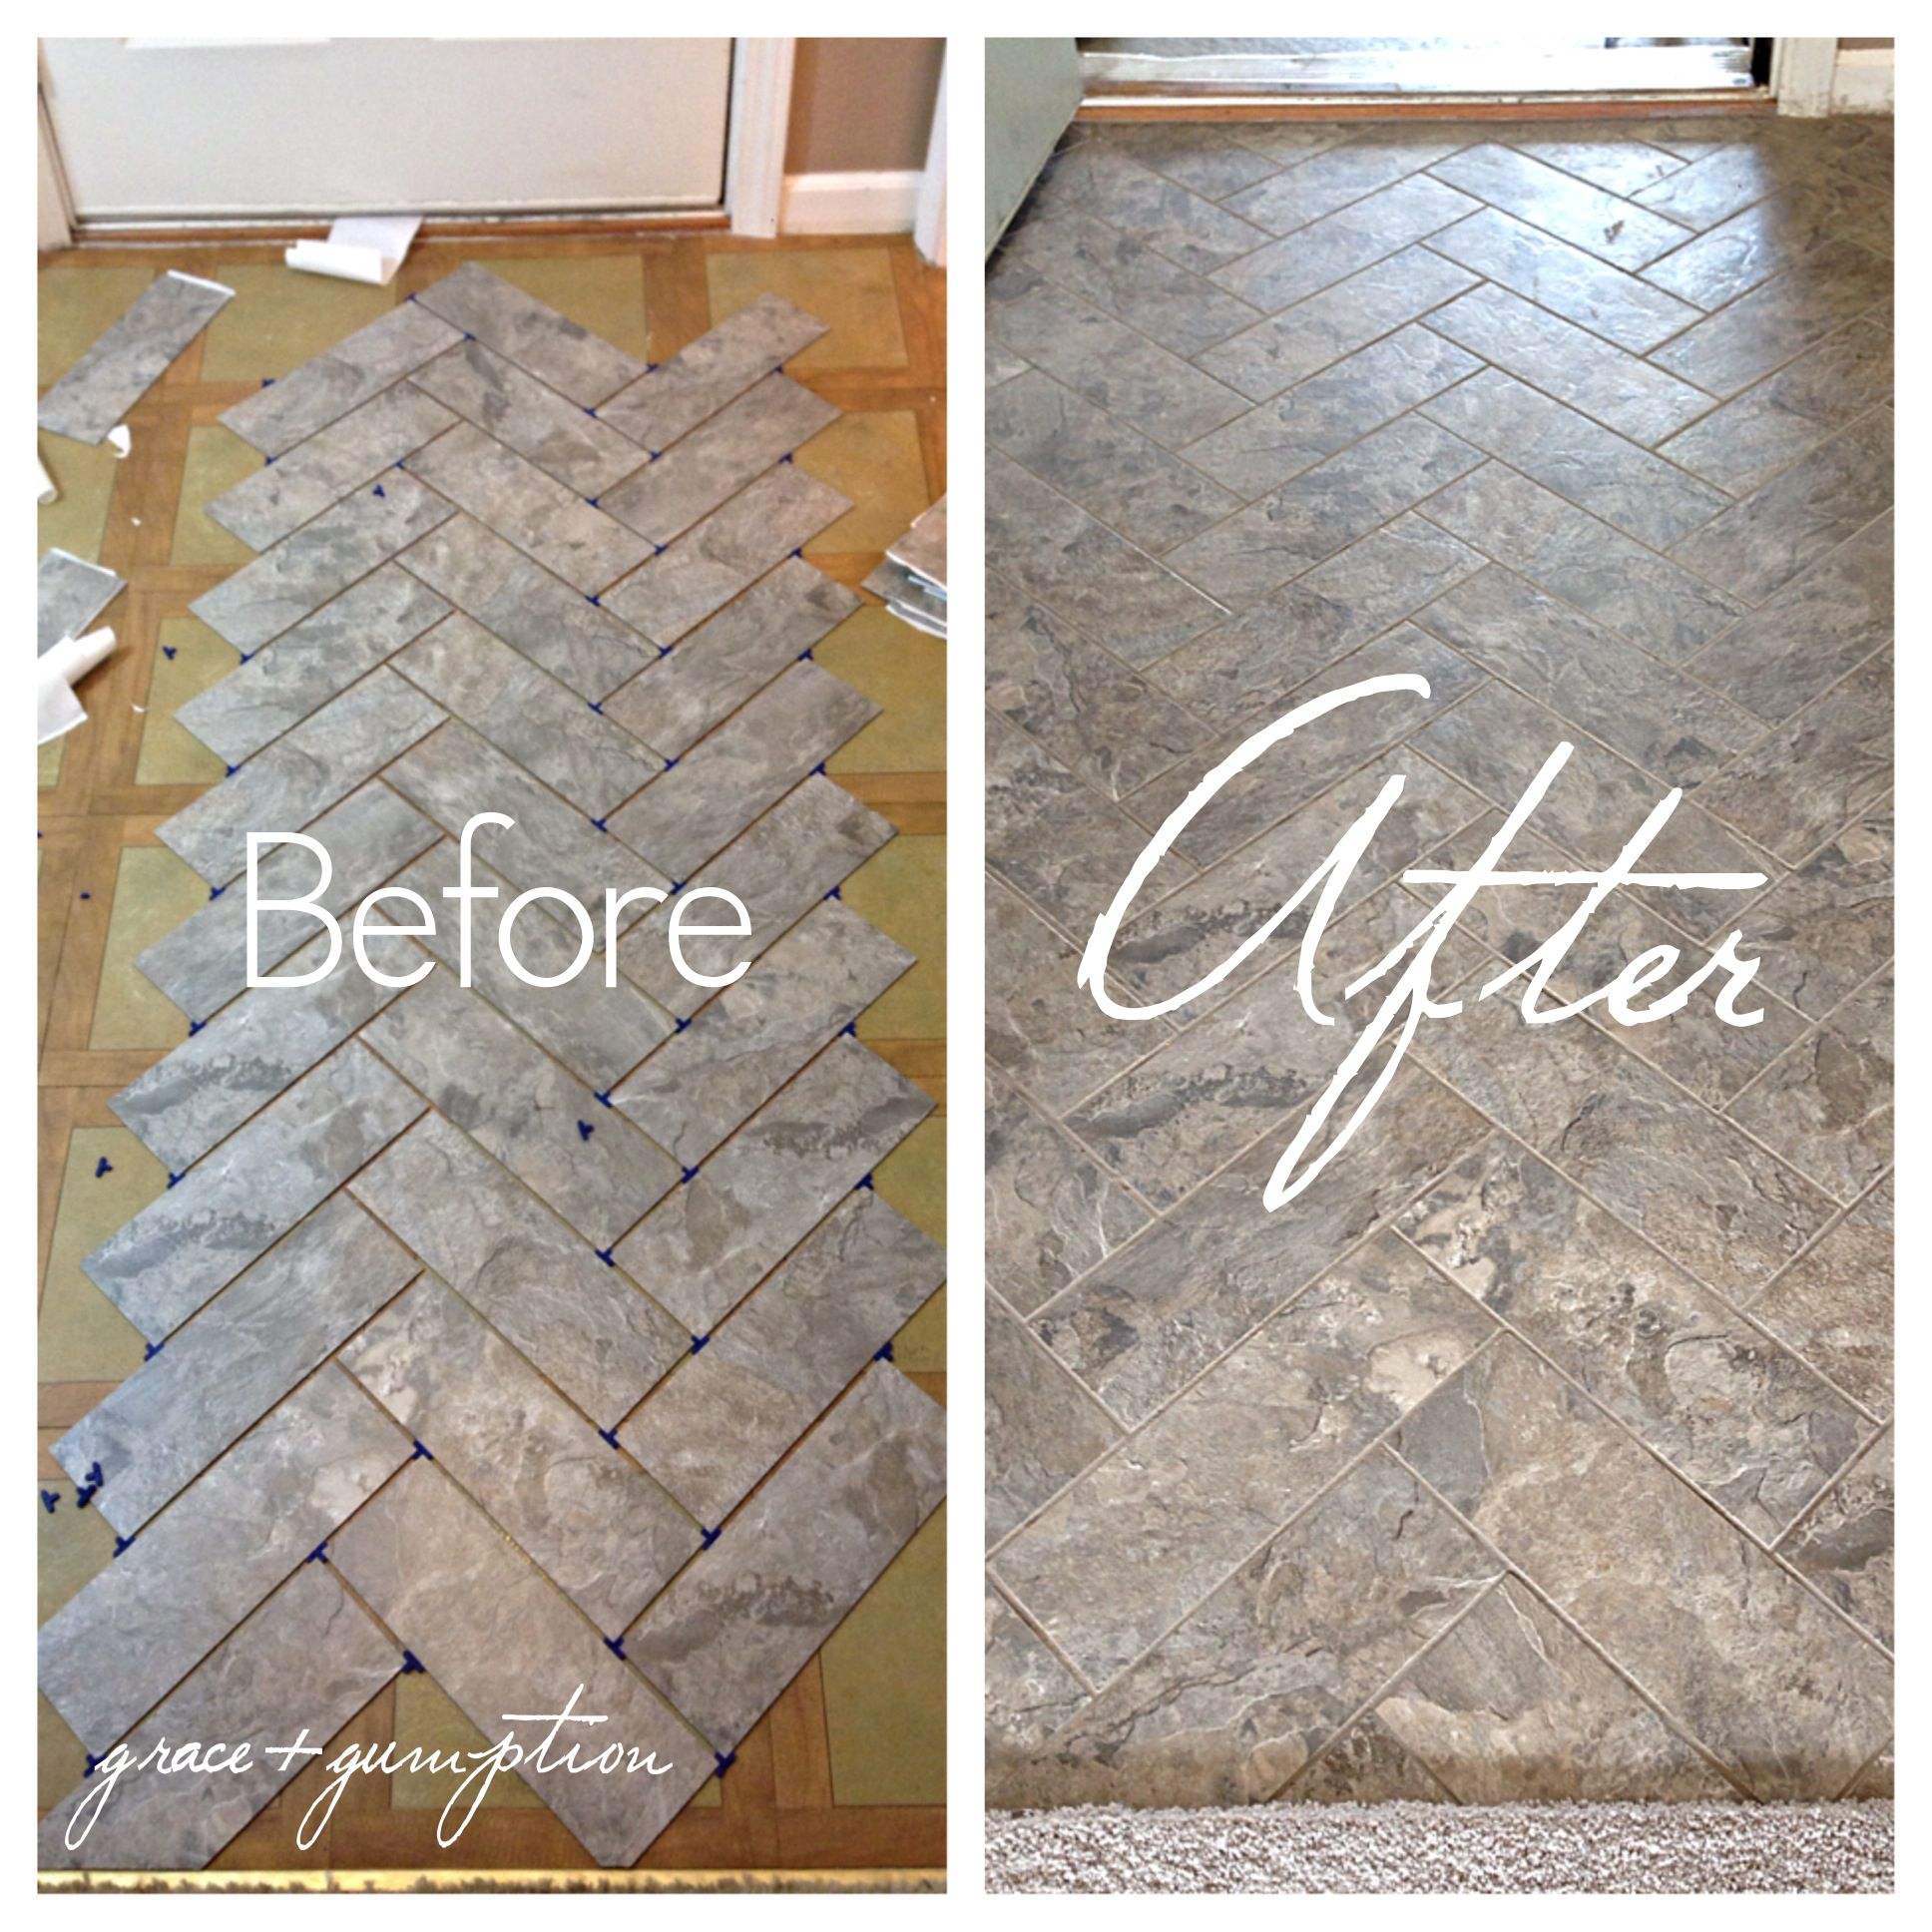 Cheap Kitchen Flooring Ideas Part - 21: DIY Herringbone Peel-n-Stick Tile Floor Before And After By Grace +  Gumption. Diy Kitchen FlooringDiy FlooringCheap Kitchen FloorCheap Flooring  Ideas ...